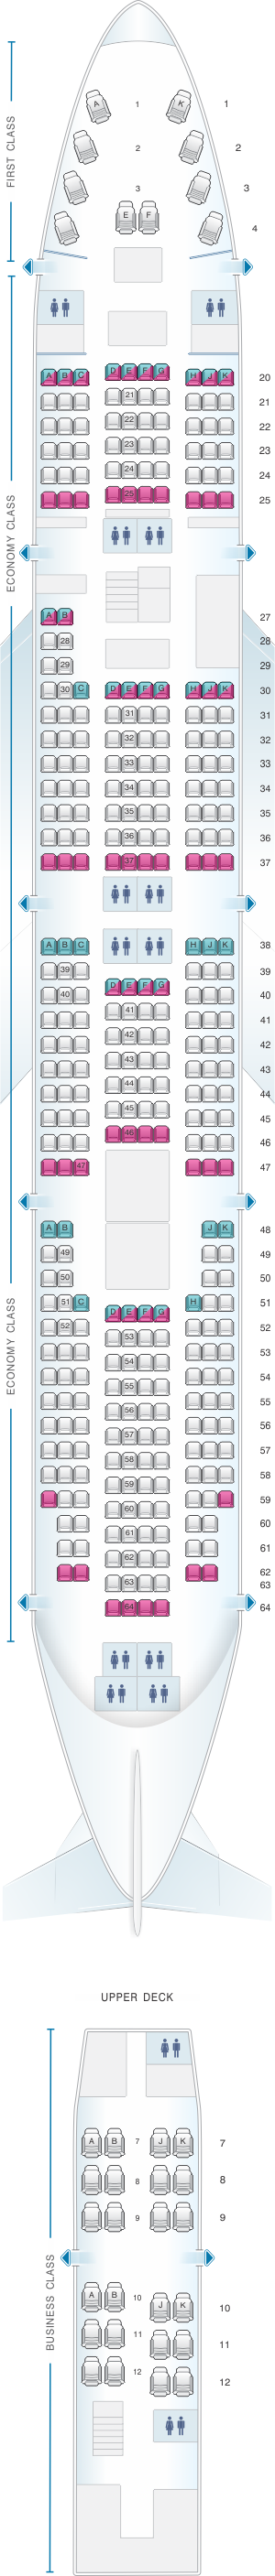 Seat map for Asiana Airlines Boeing B747 400 398PAX